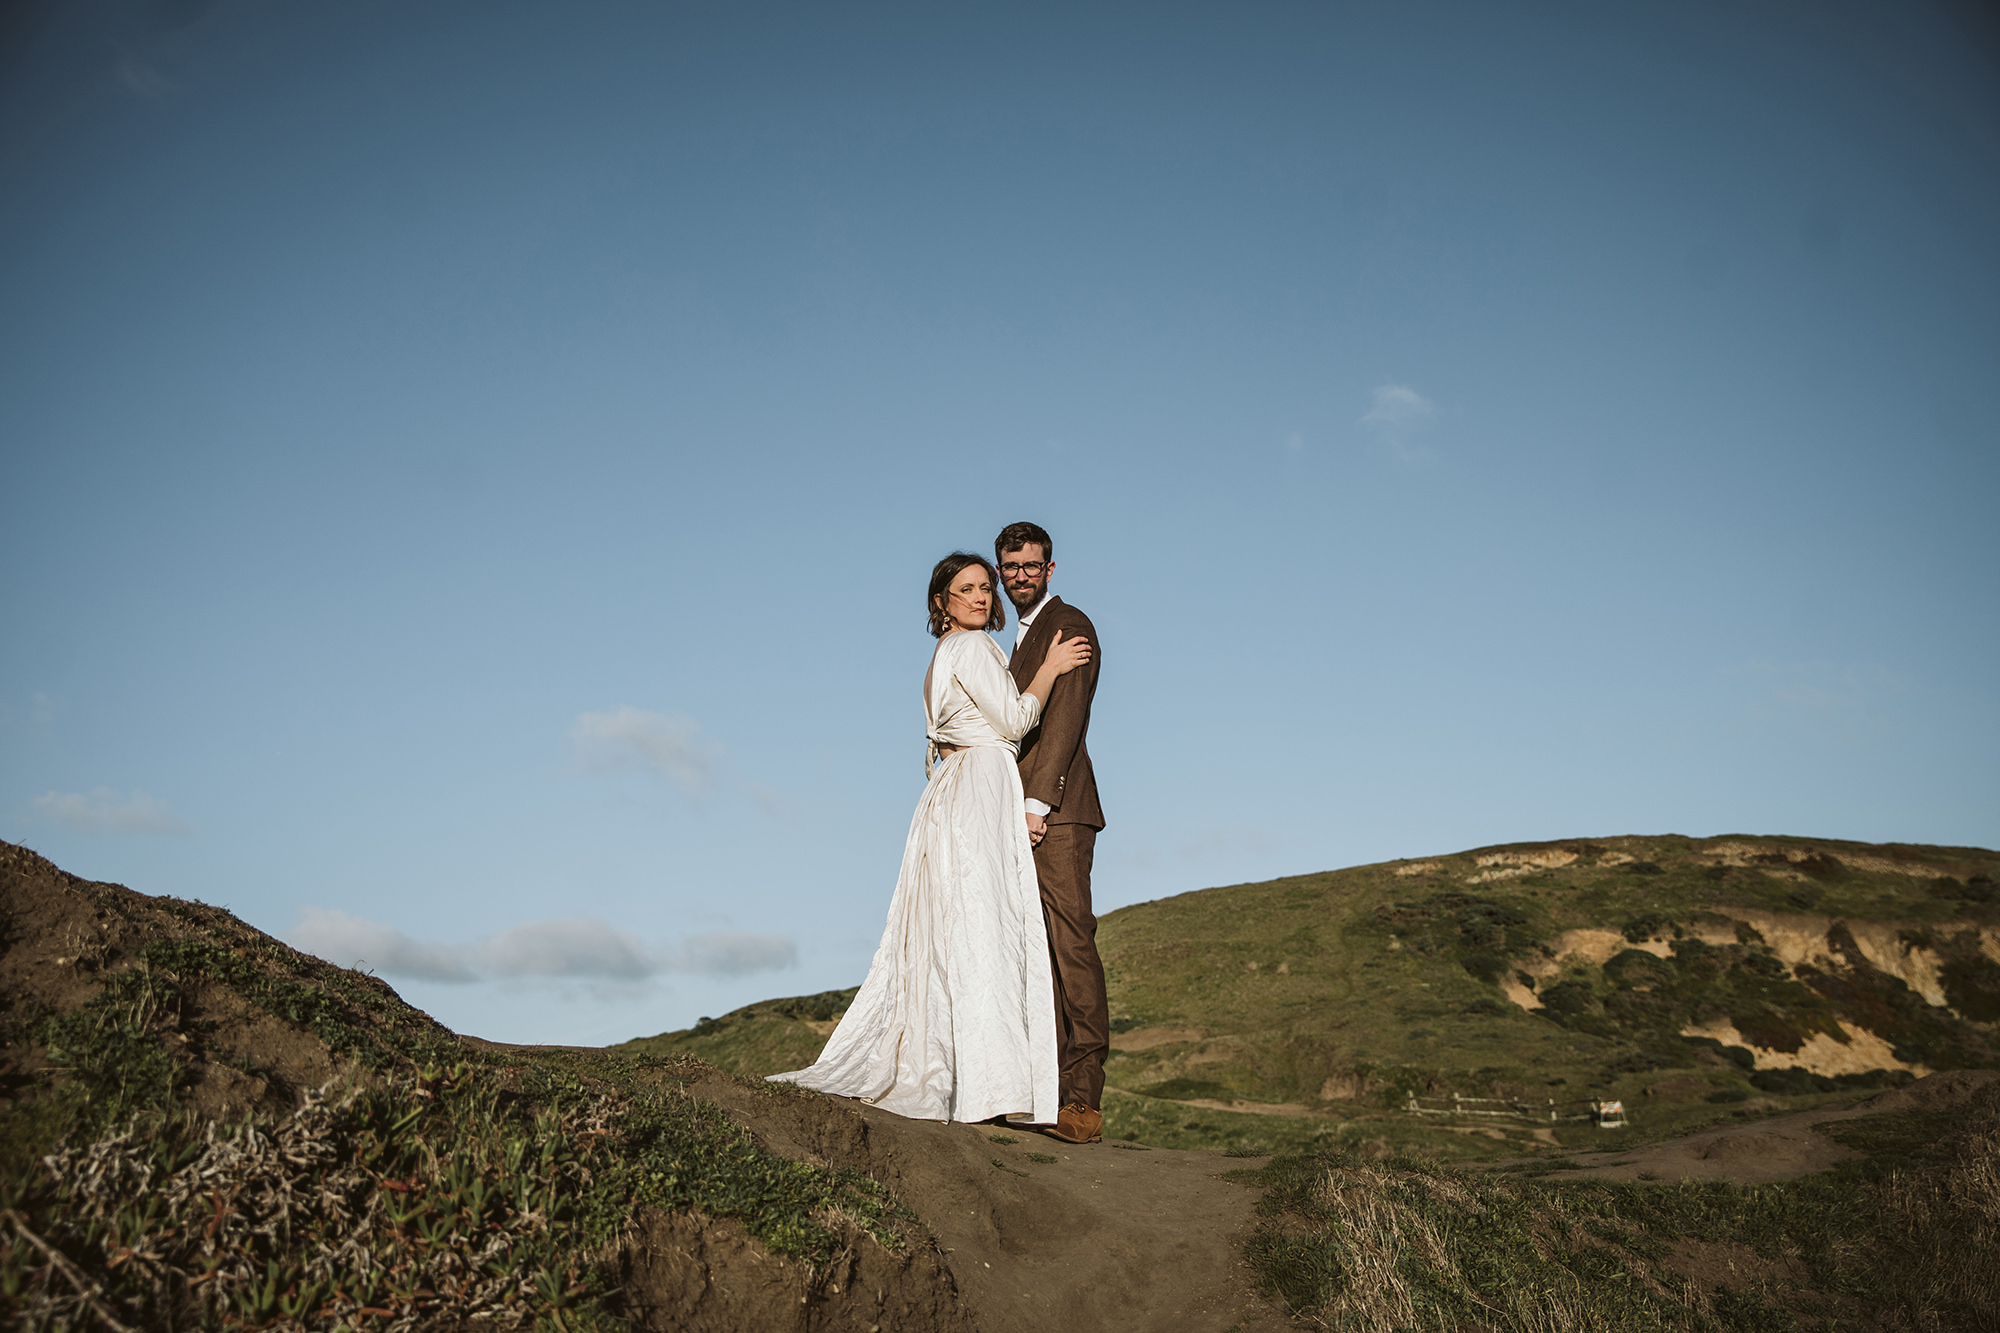 Bride and groom embrace at Chimney Rock at sunset for Point Reyes Elopement.